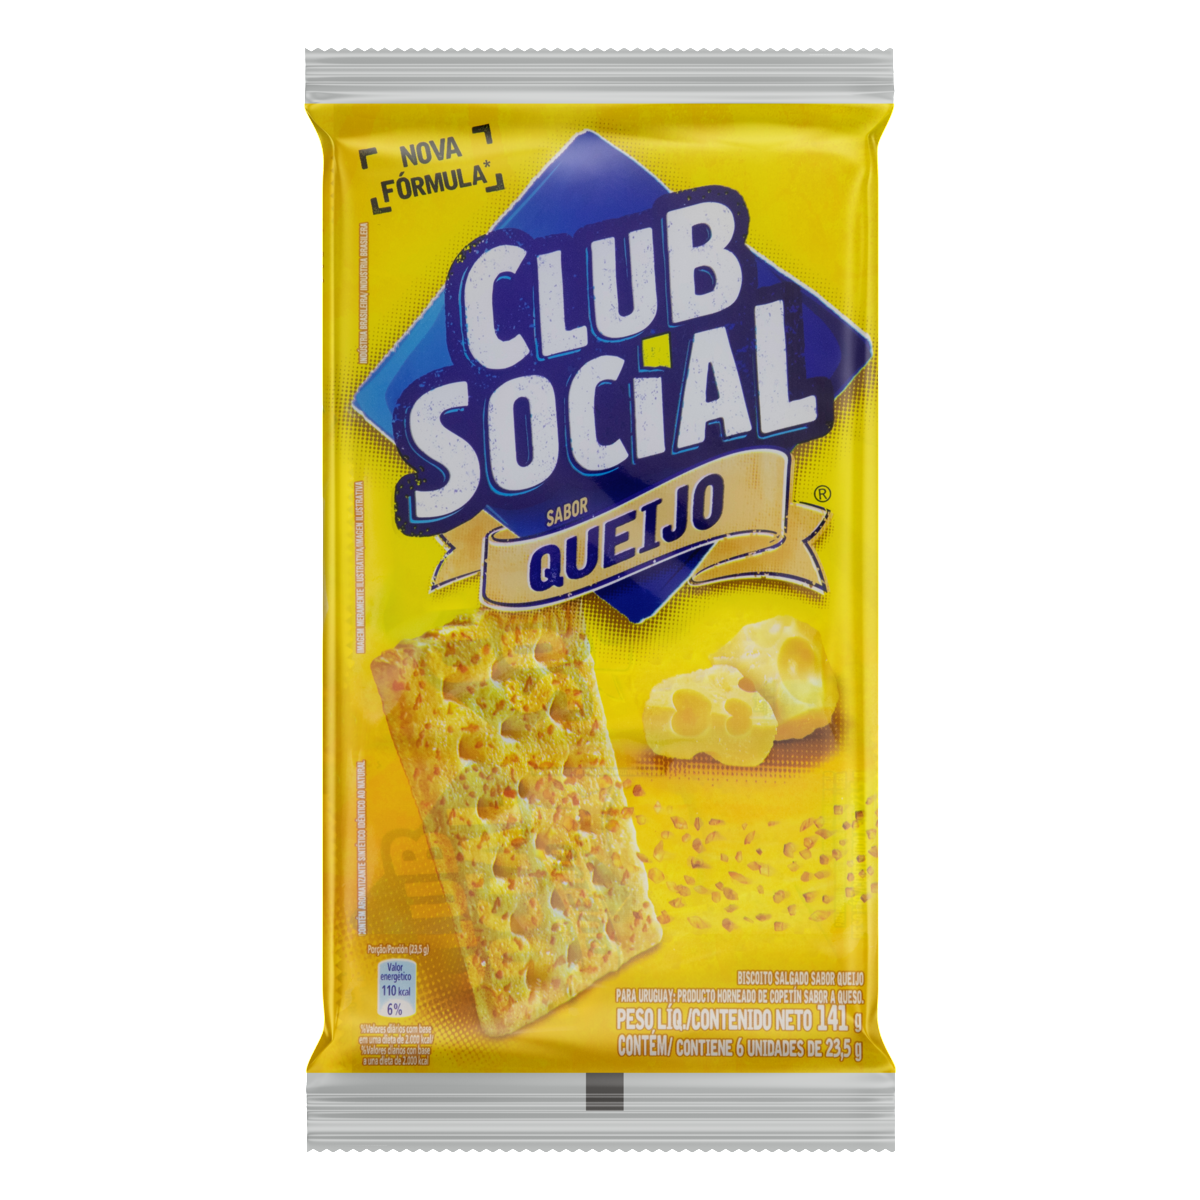 7622210644534 - PACK BISCOITO QUEIJO CLUB SOCIAL PACOTE 141G 6 UNIDADES